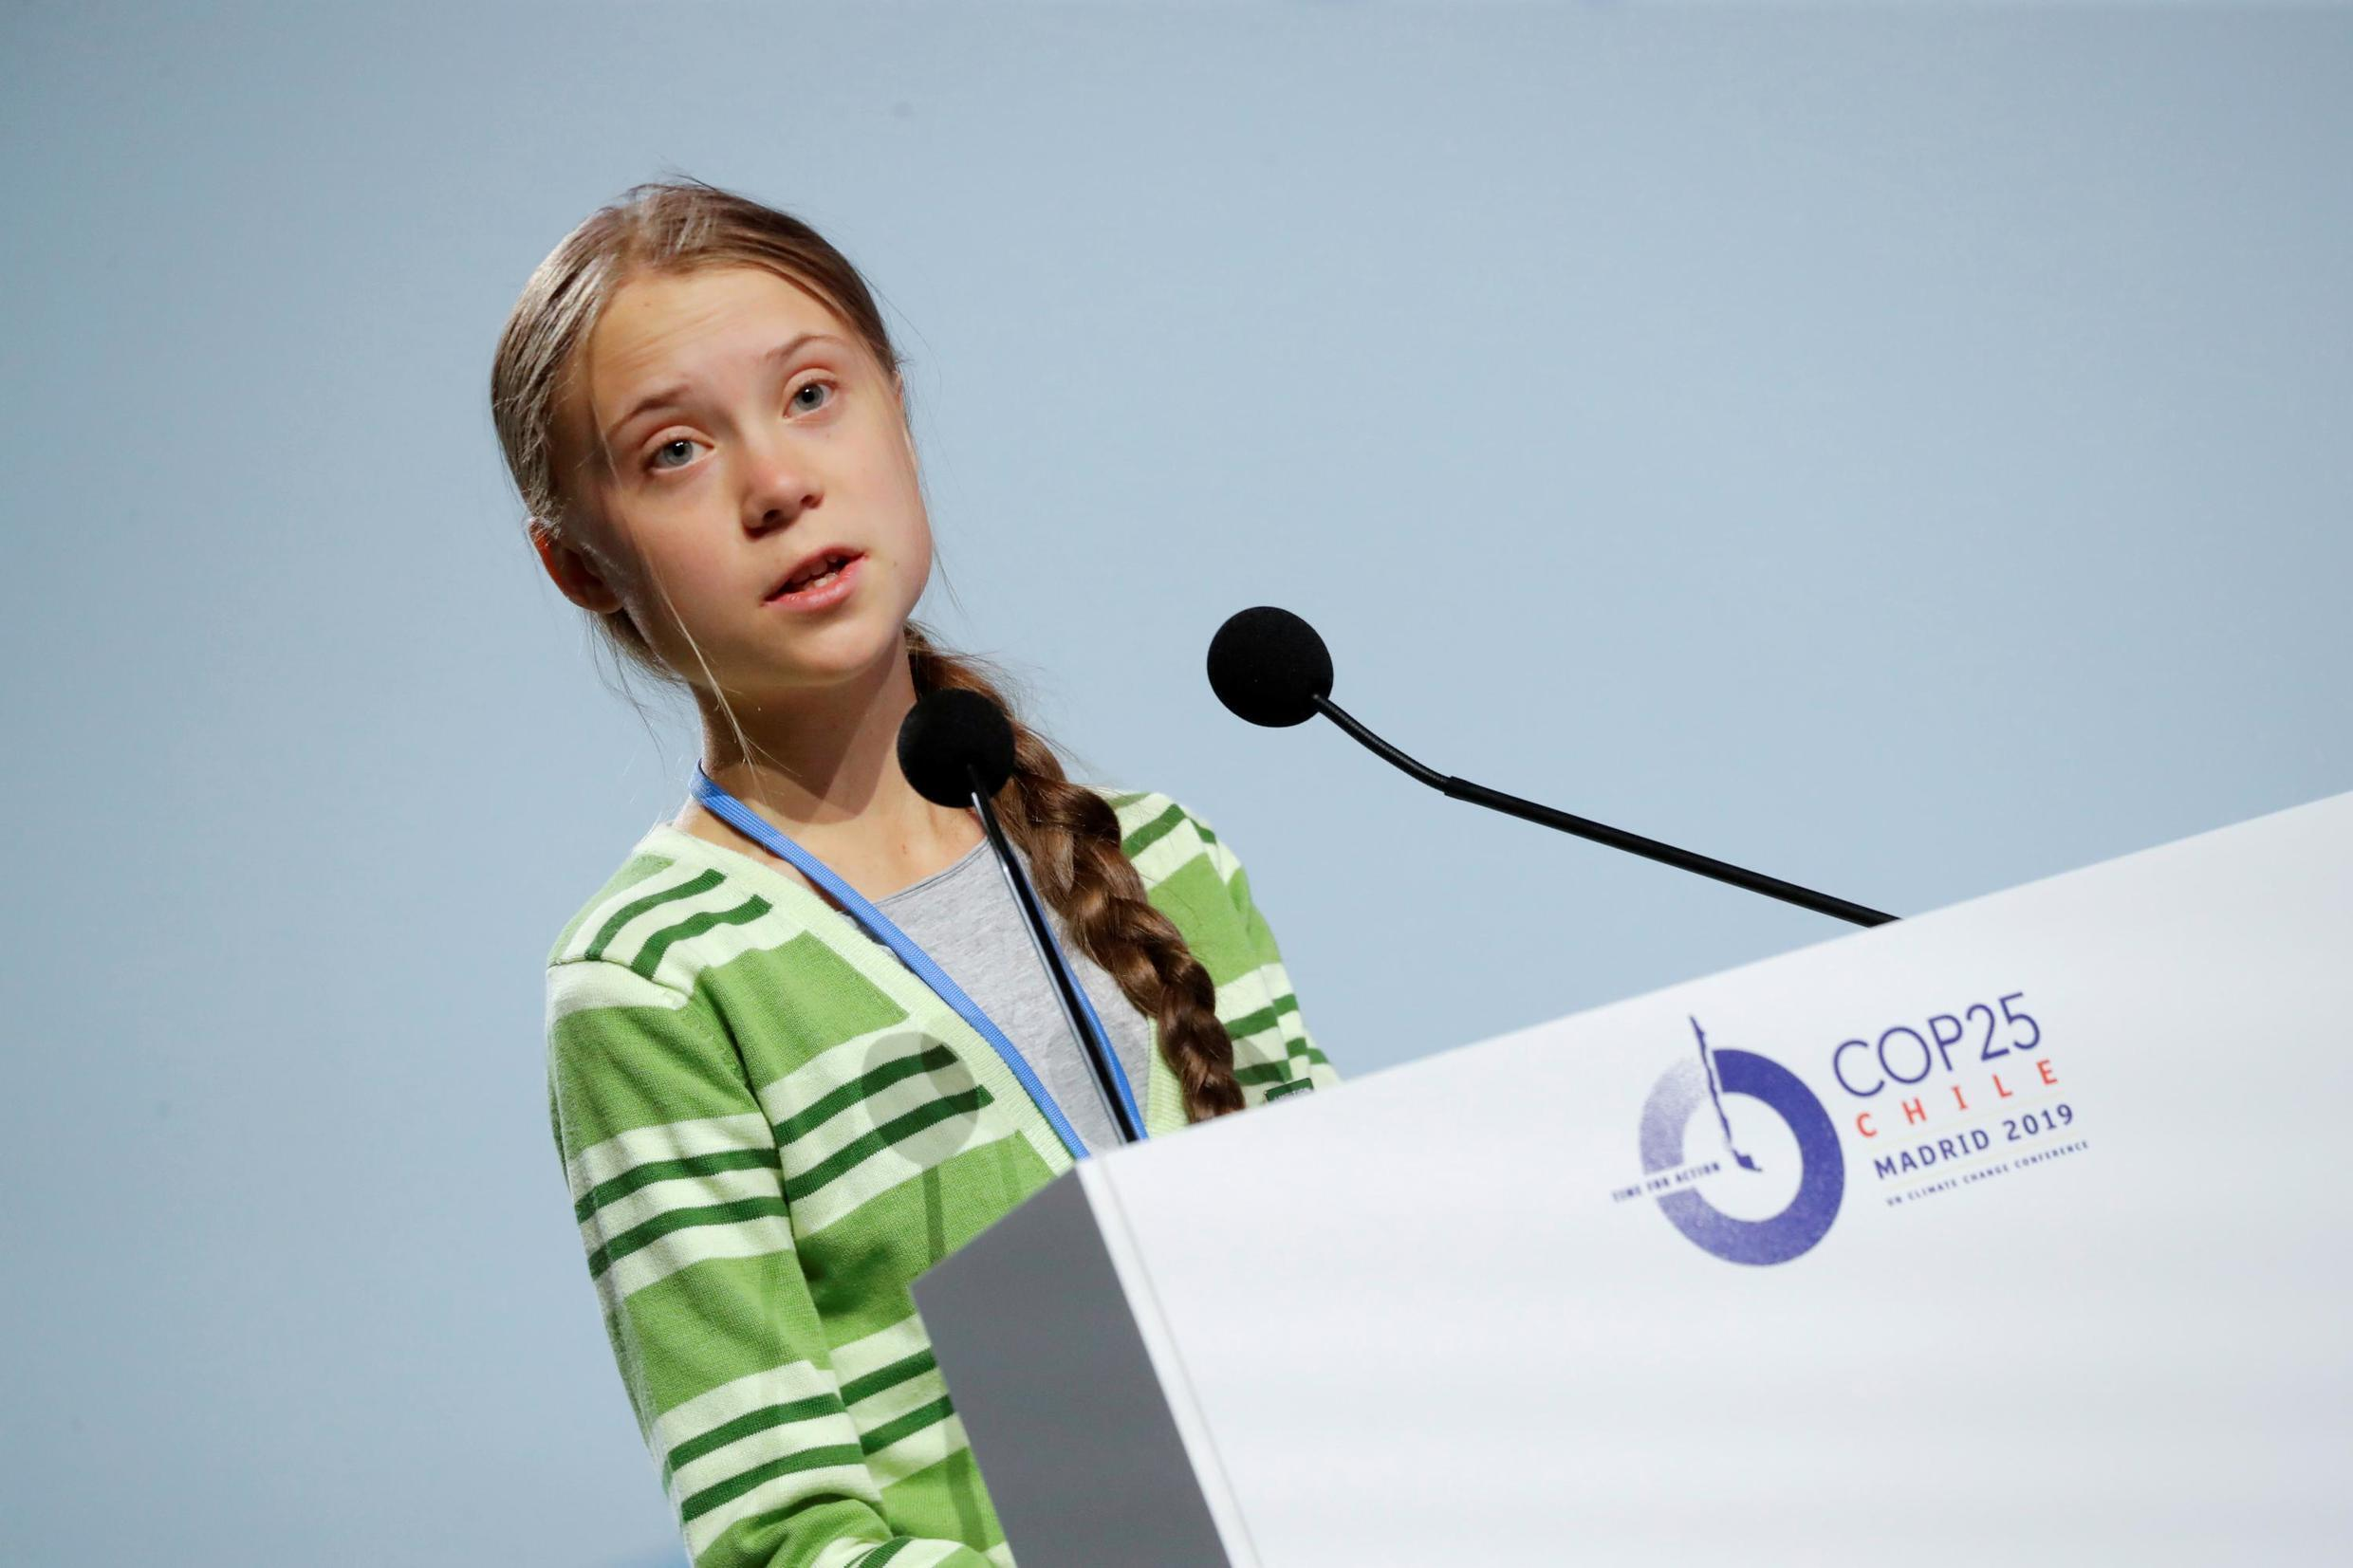 Teenage climate activist Greta Thunberg was among those left disappointed by the outcome of climate talks in Madrid.